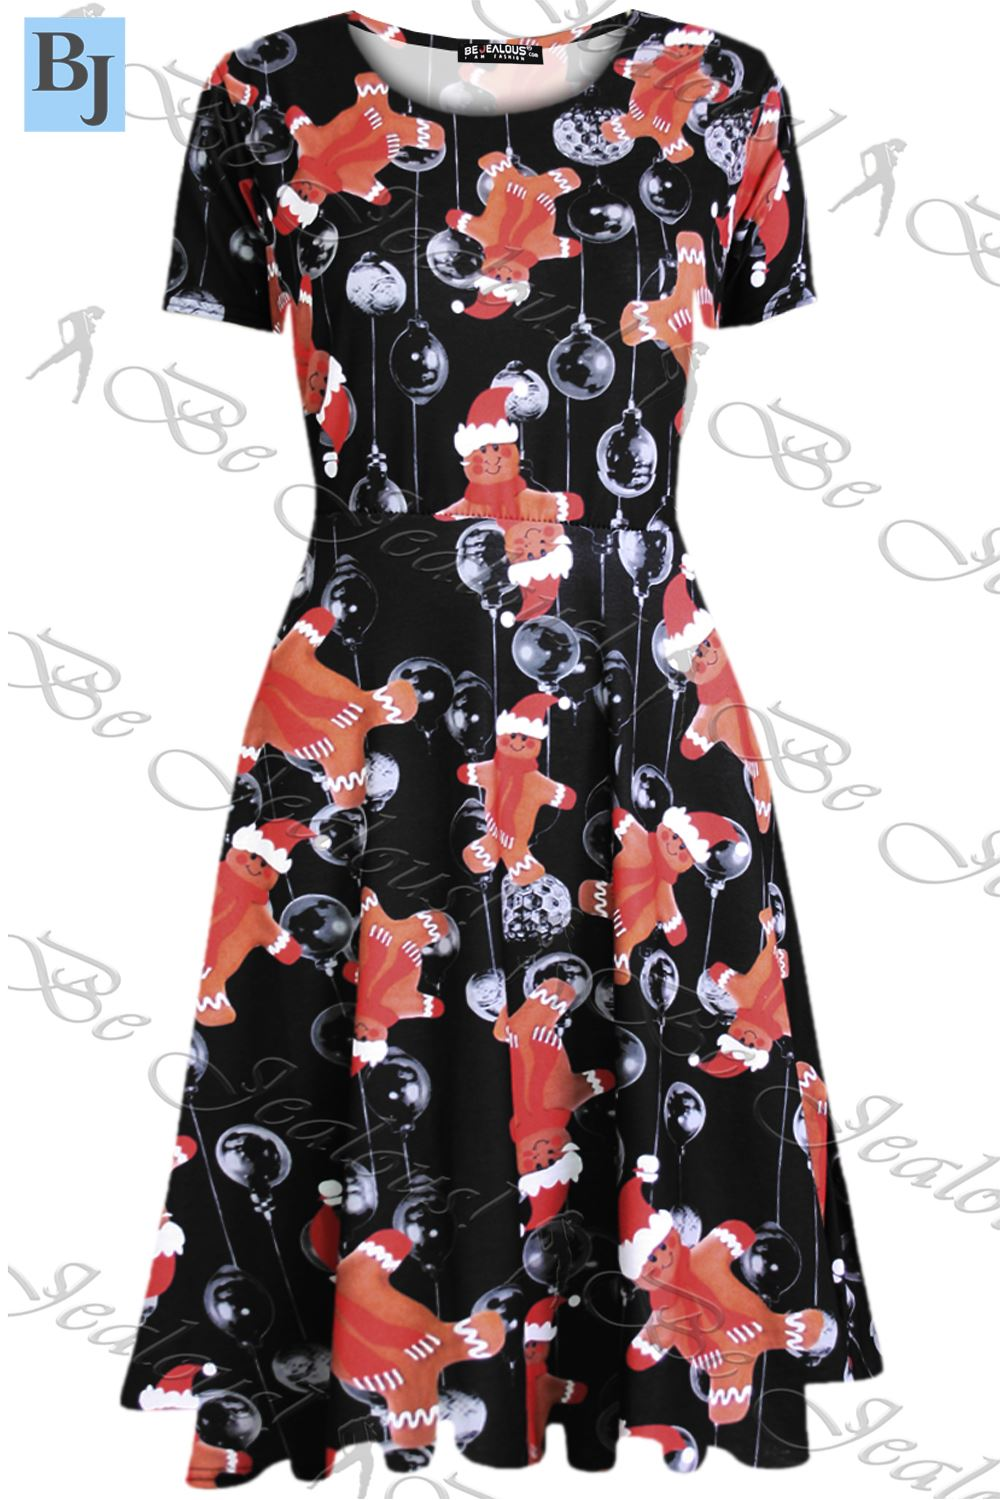 Clothing shoes accessories gt women s clothing gt dresses